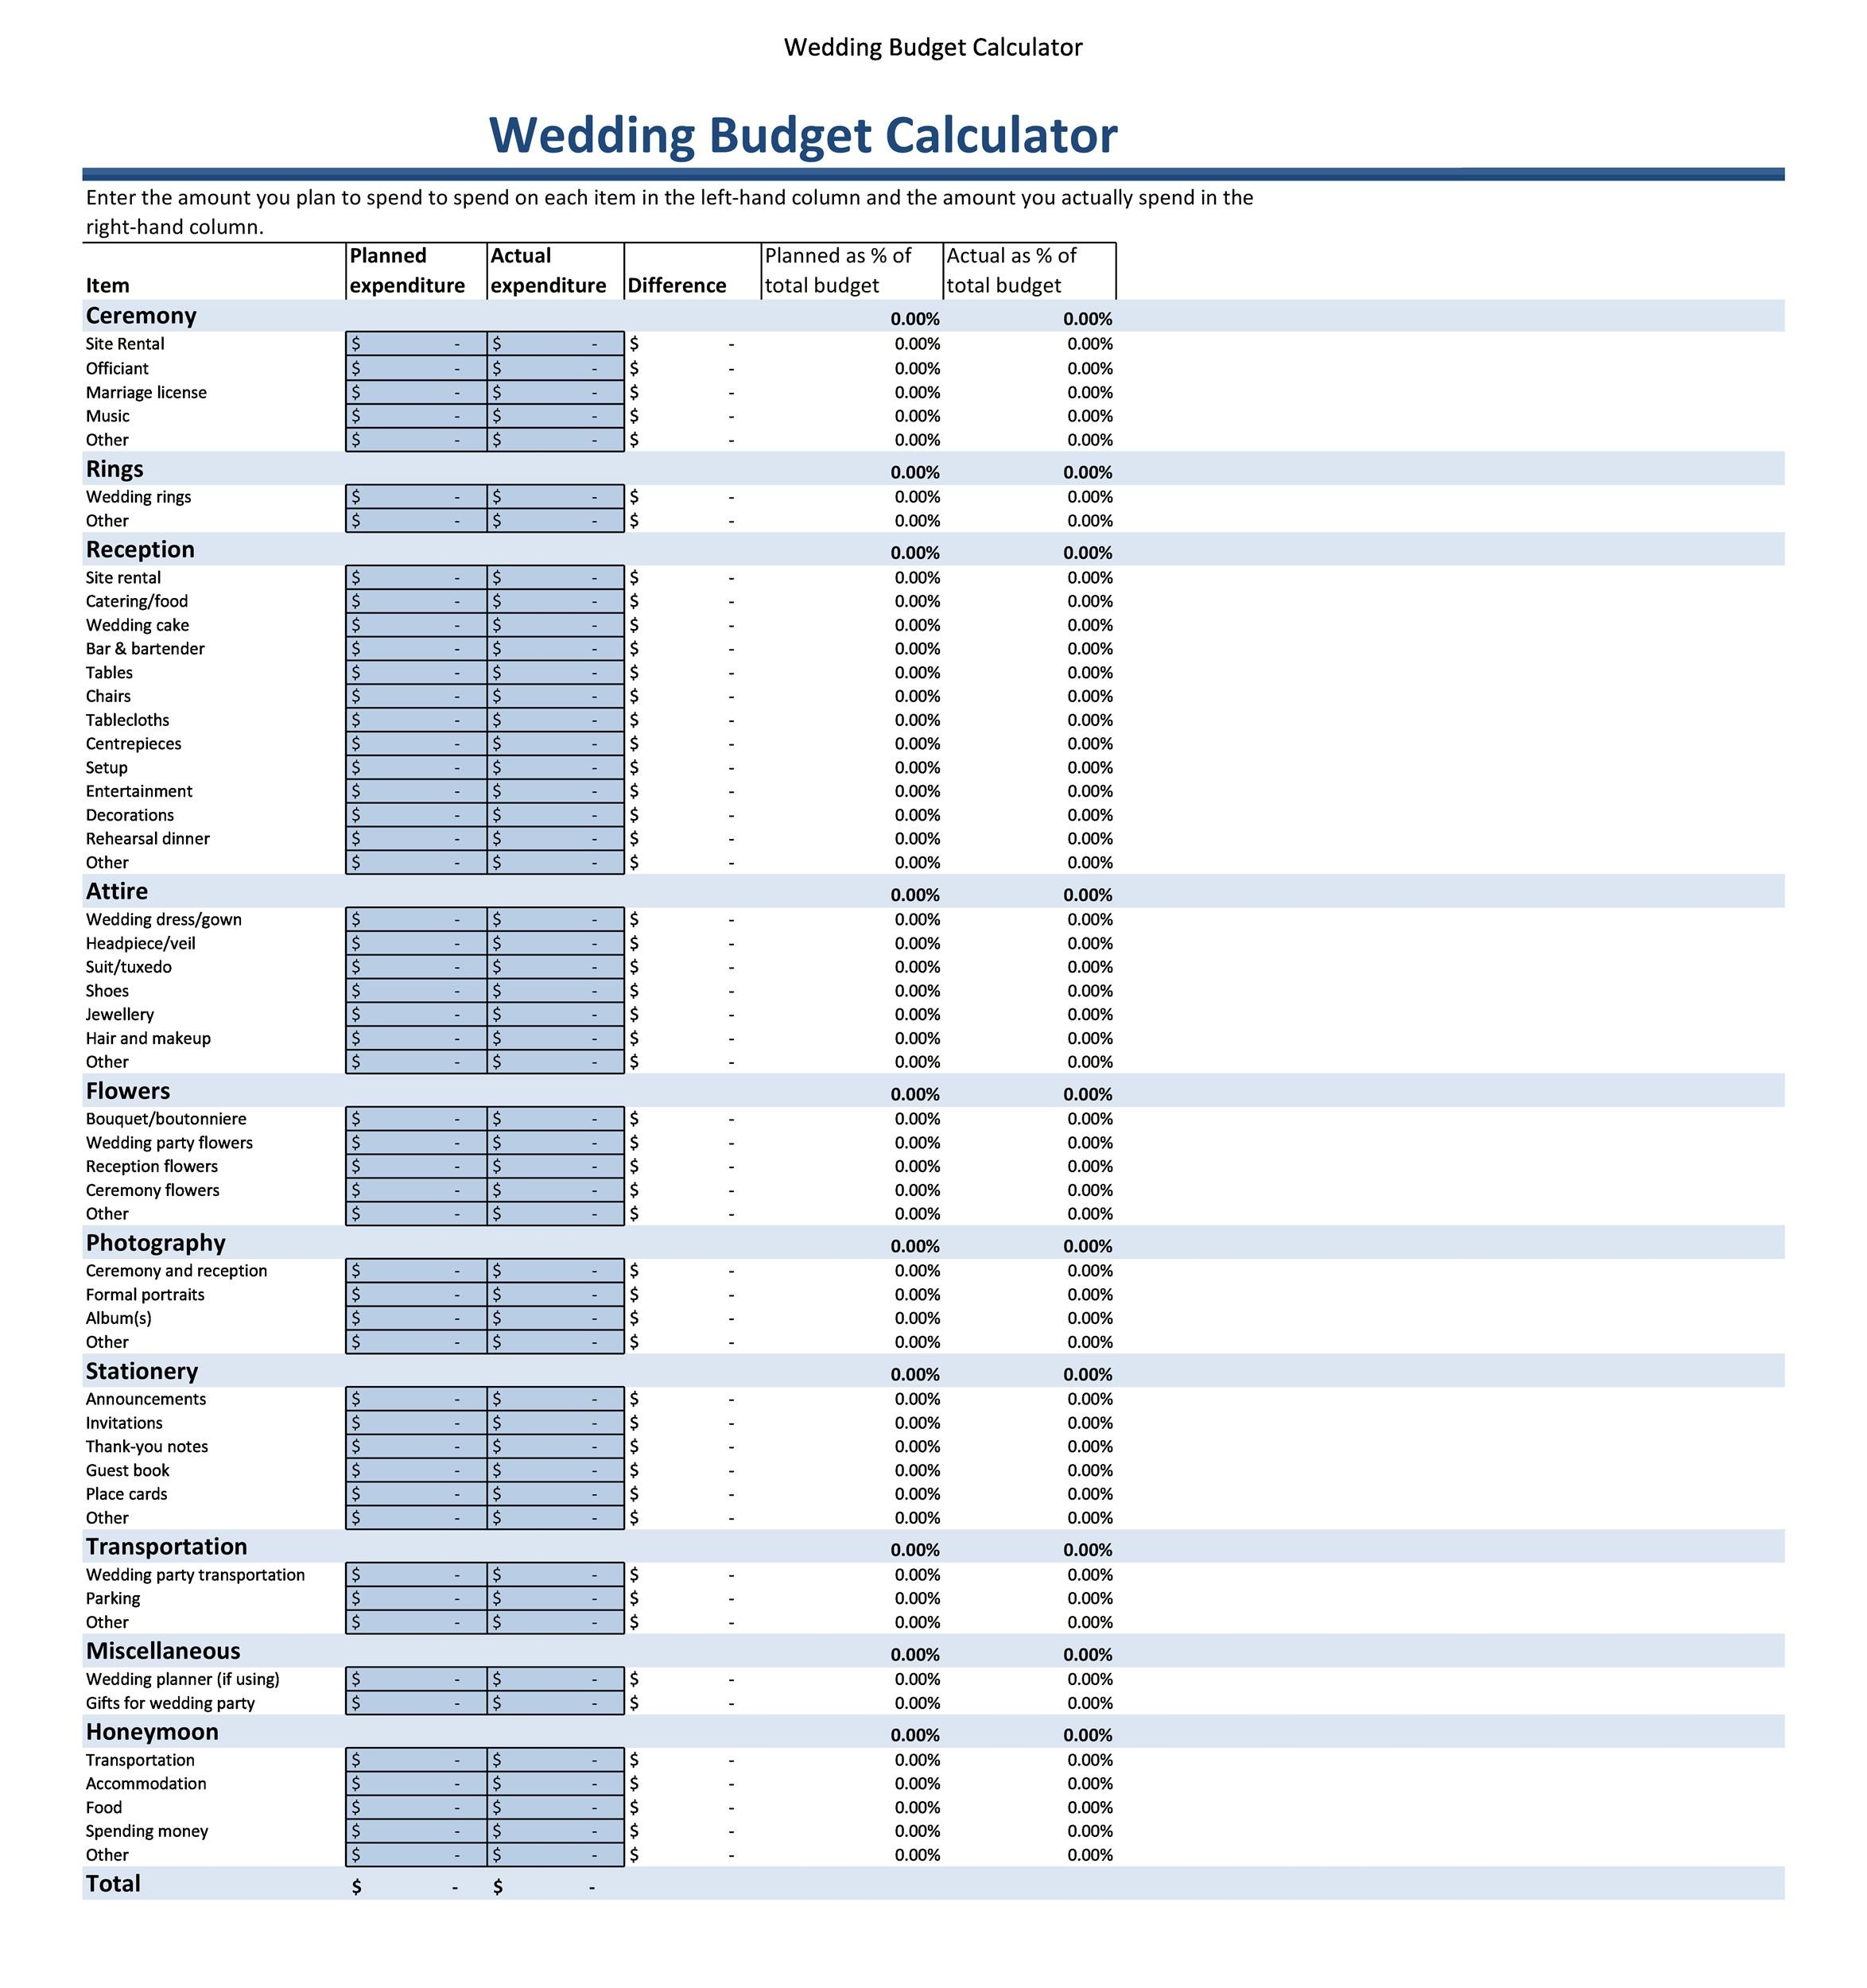 38 Great Wedding Budget Spreadsheets Tips ᐅ Template Lab